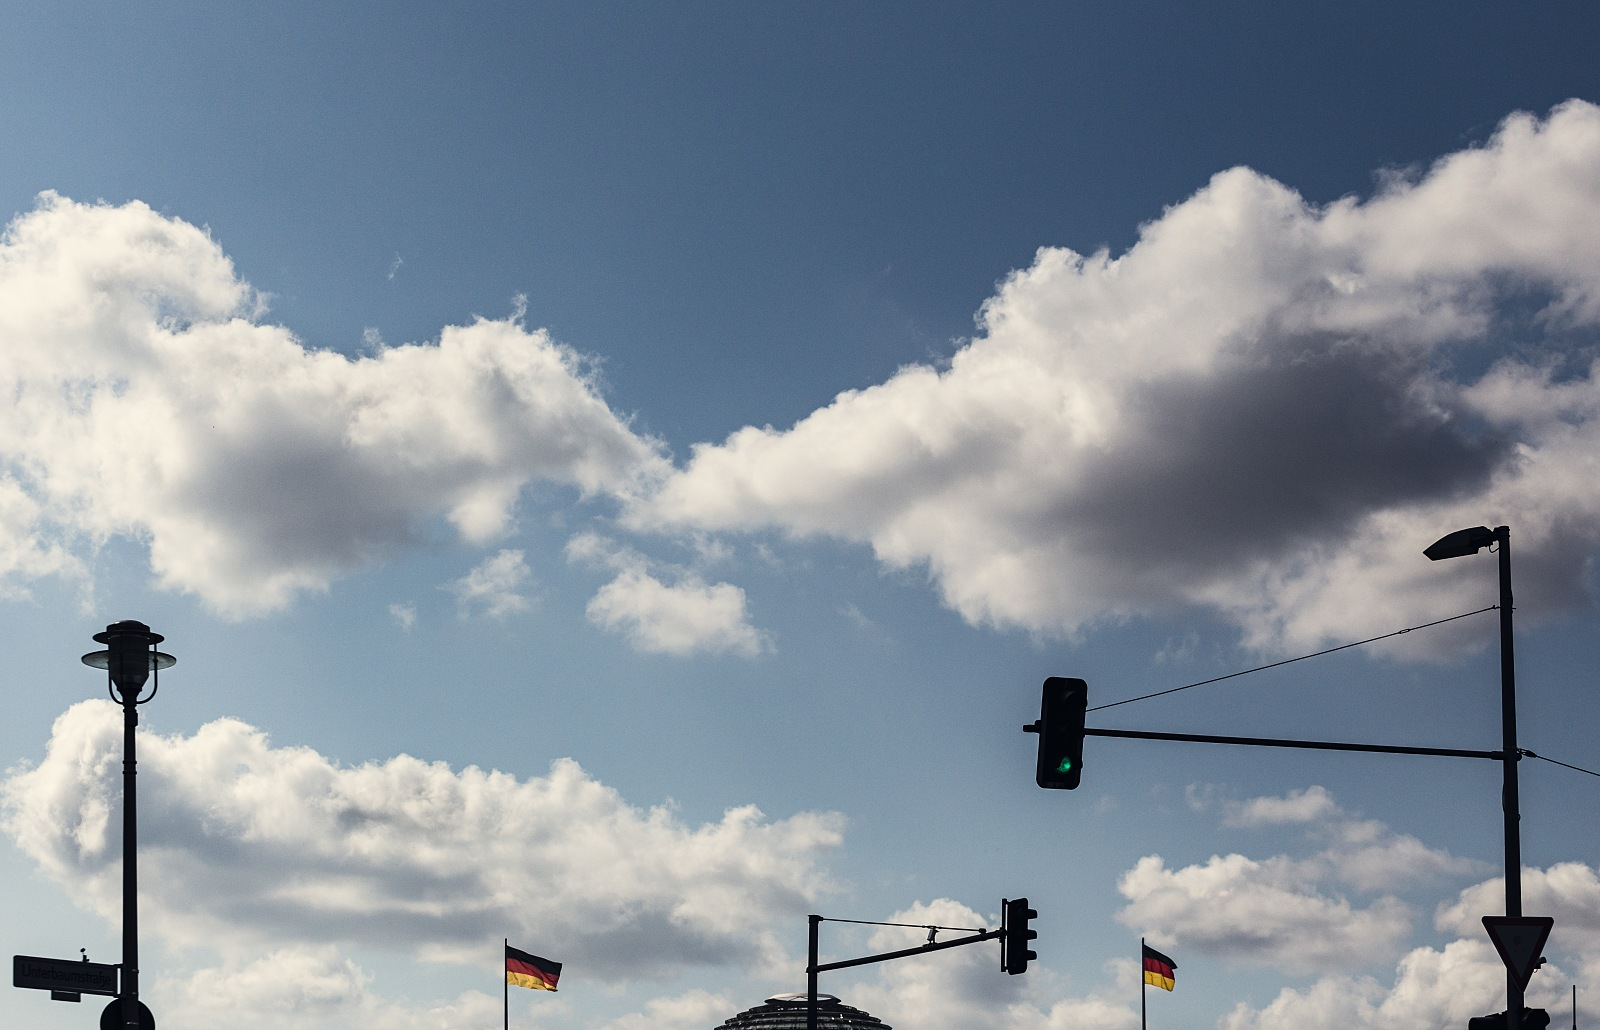 Traffic lights and German flags